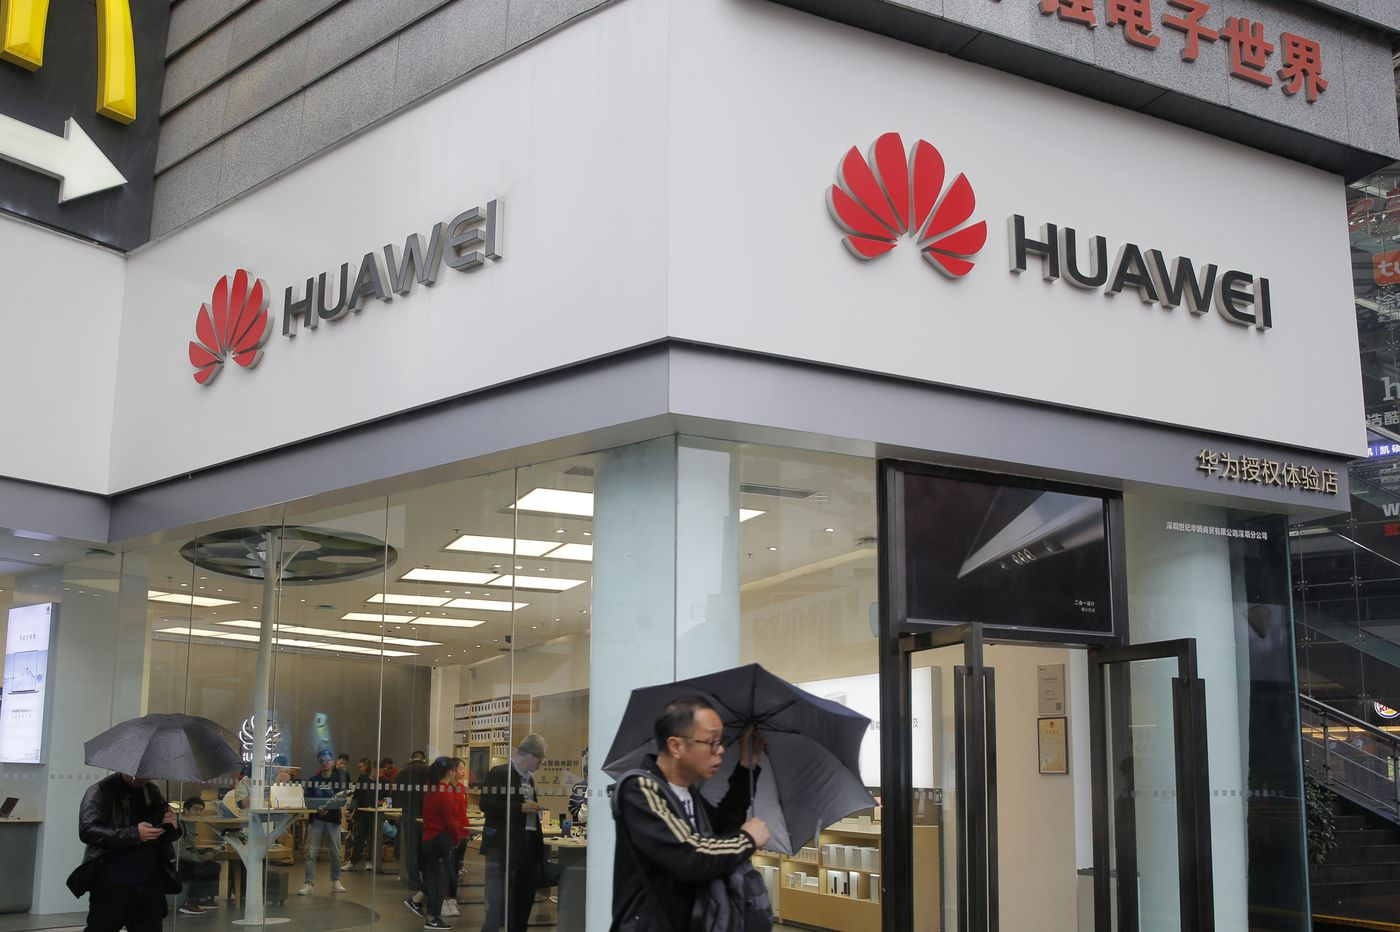 Huawei sues U.S. government in growing counteroffensive against purchasing ban